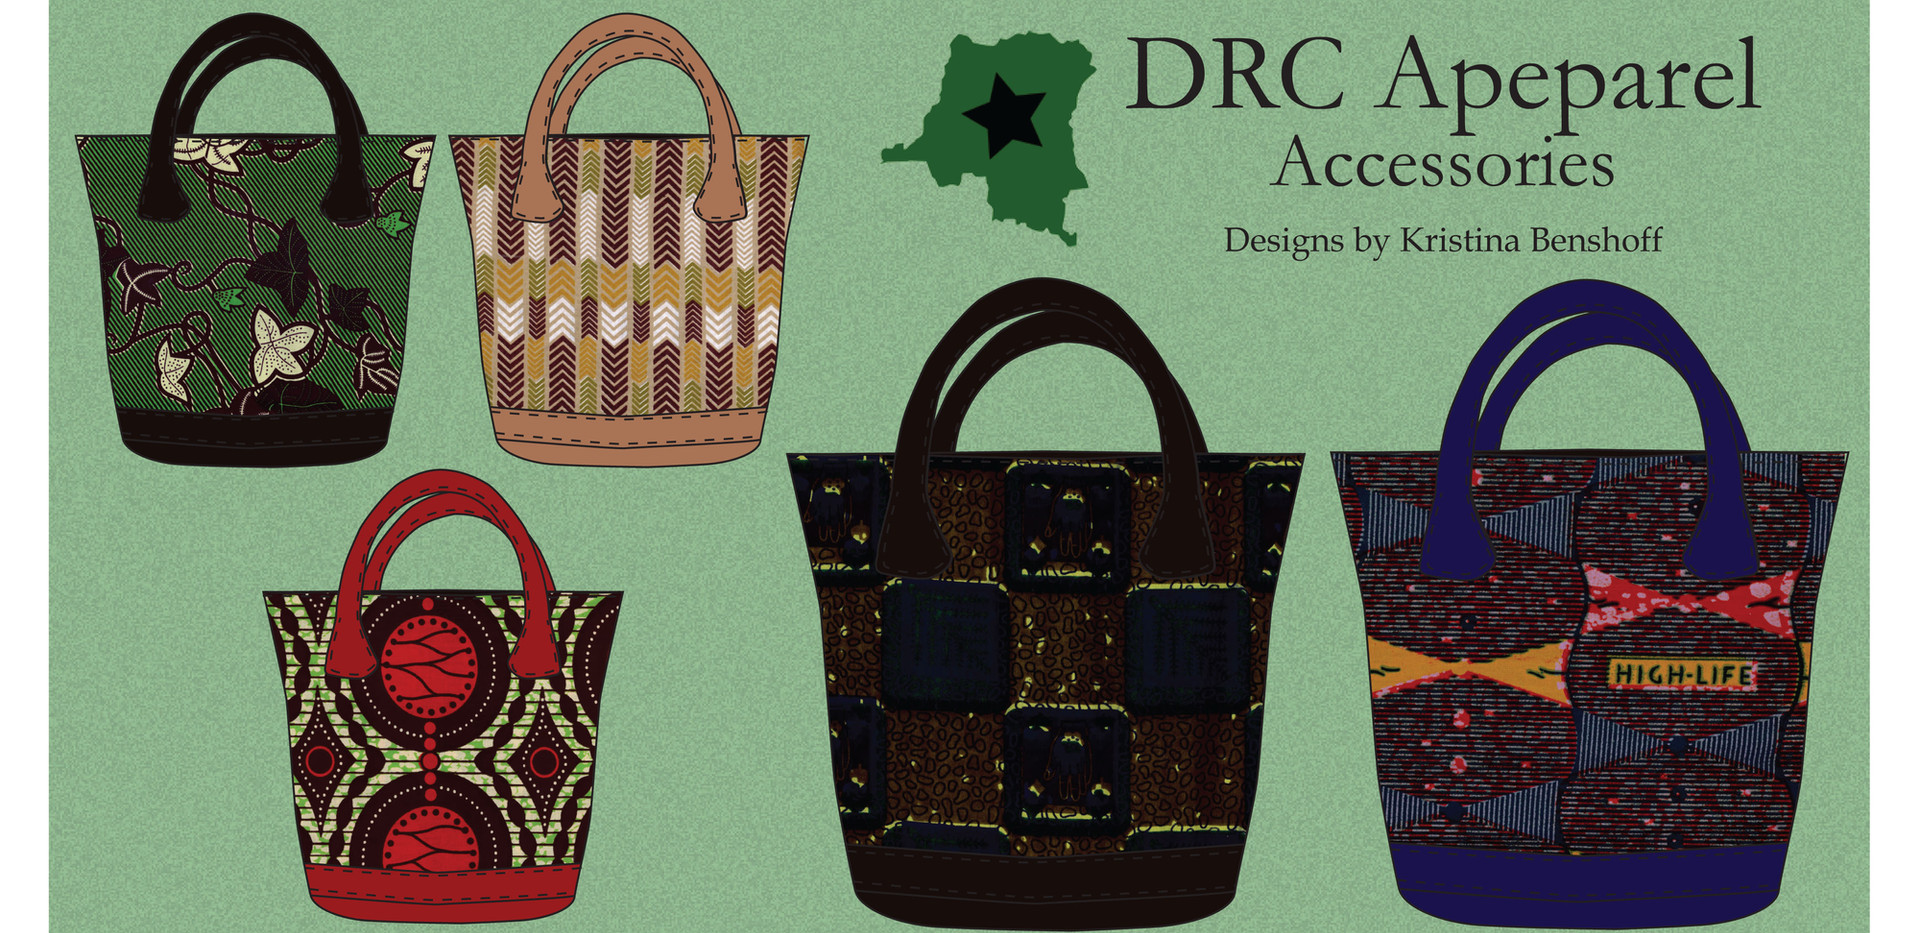 Freelance Work For DRC APEarell